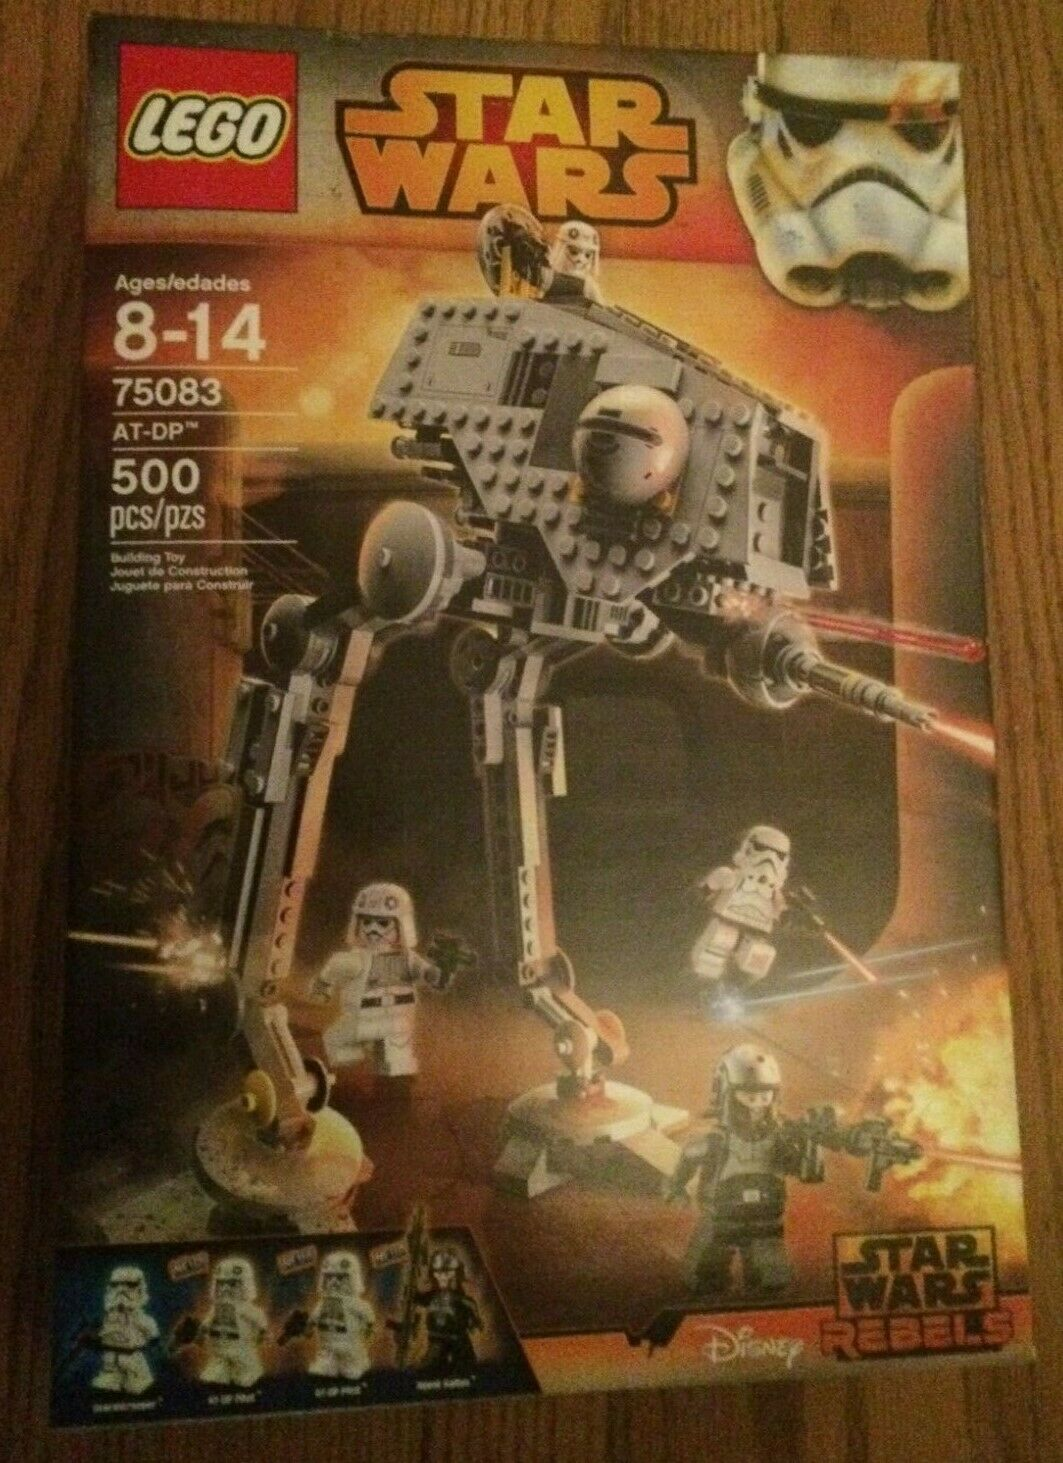 LEGO STAR WARS 75083 AT-DP Set New in Sealed Box